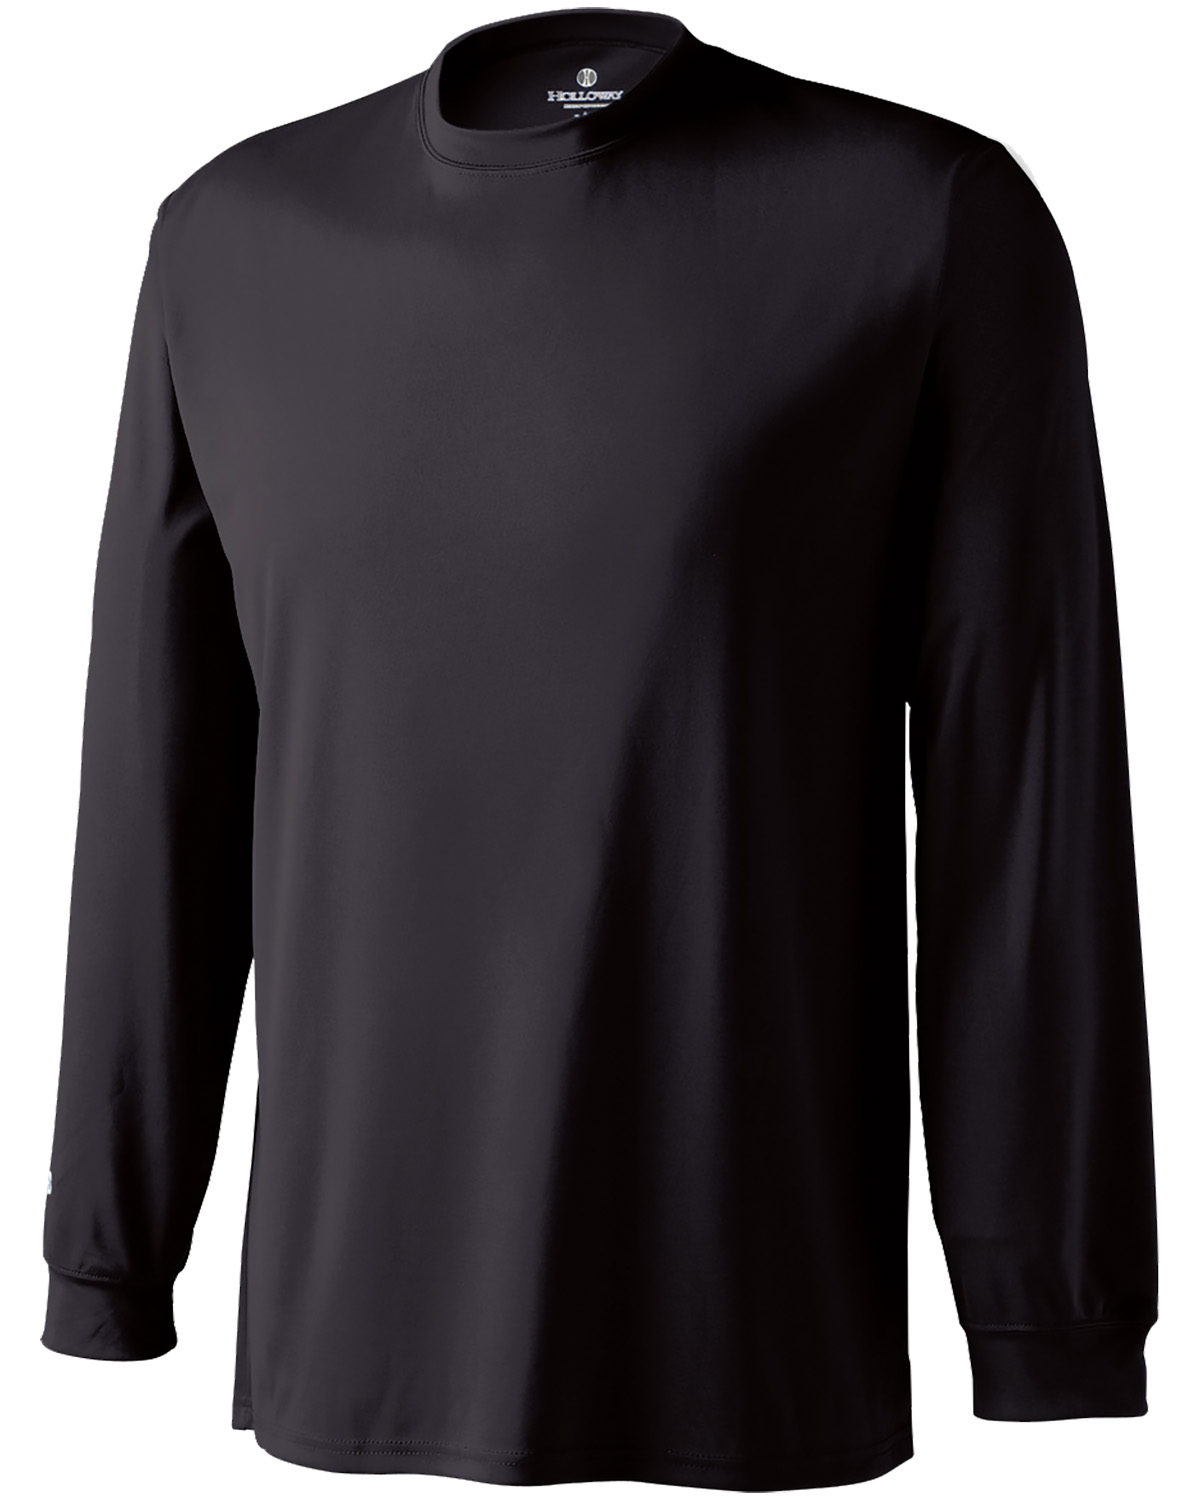 Holloway 222521 - Adult Polyester Long Sleeve Spark 2.0 Shirt